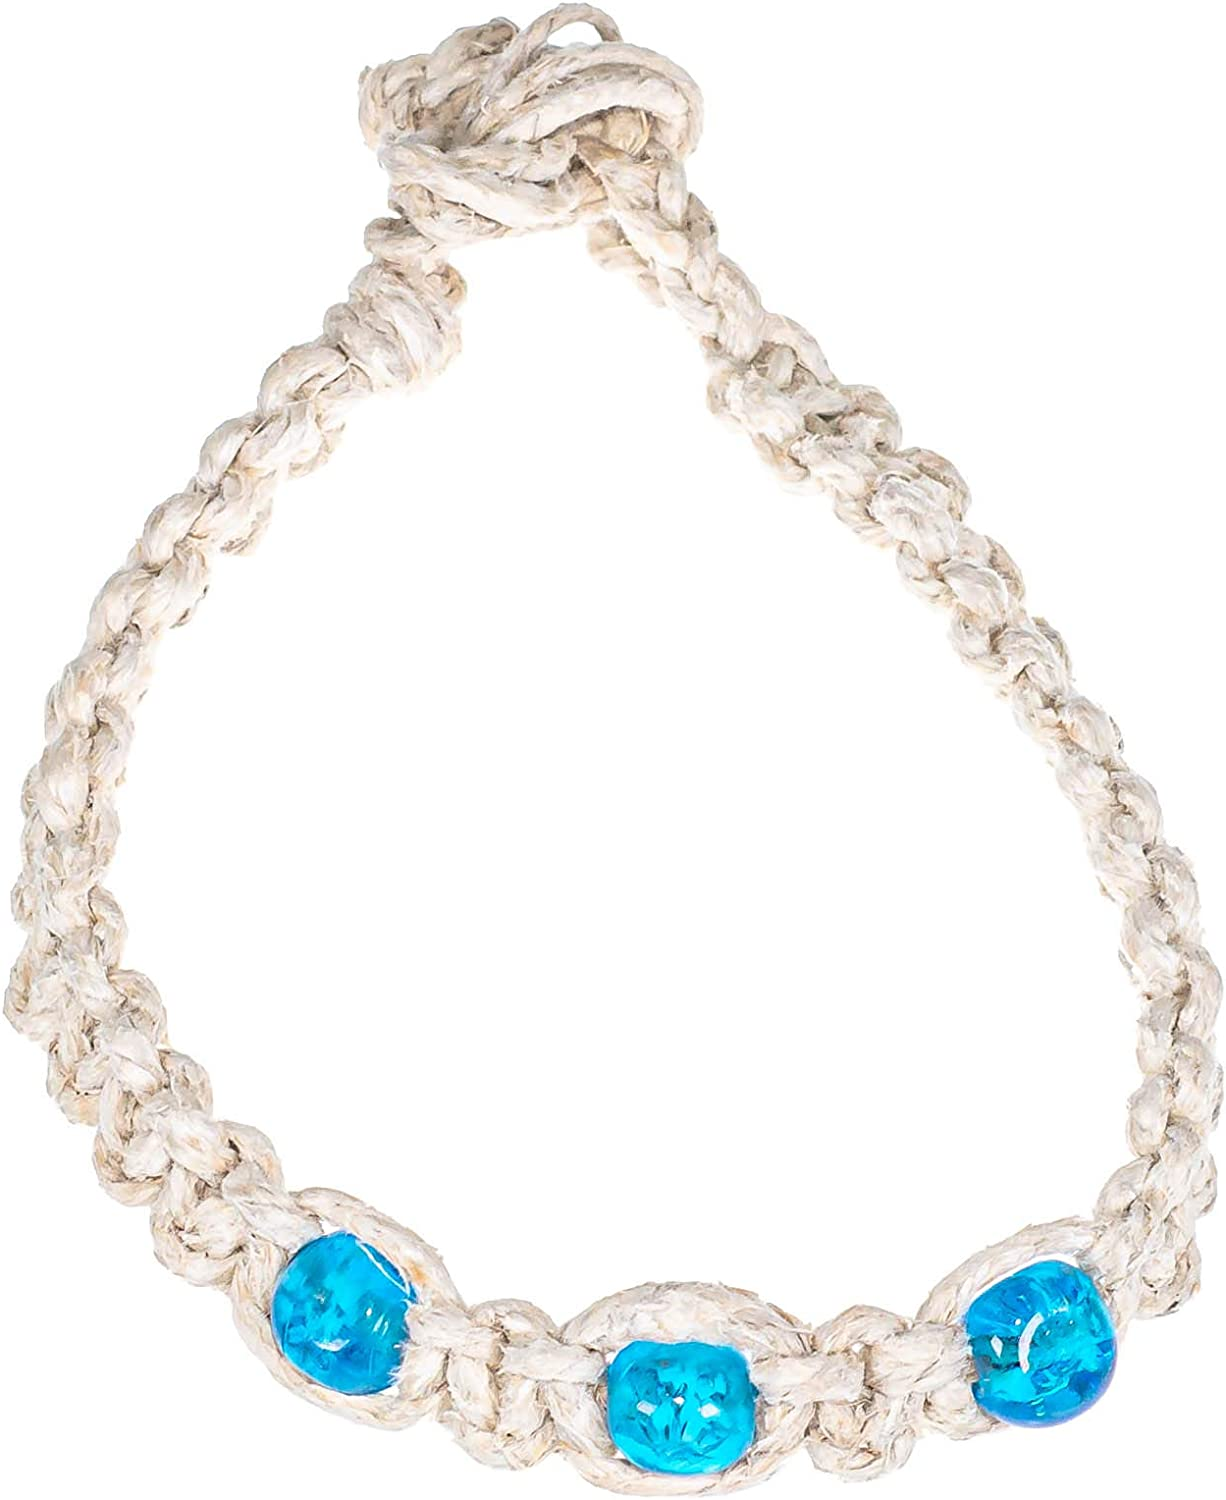 BlueRica Extra Large Hemp Necklace with Three Accent Beads